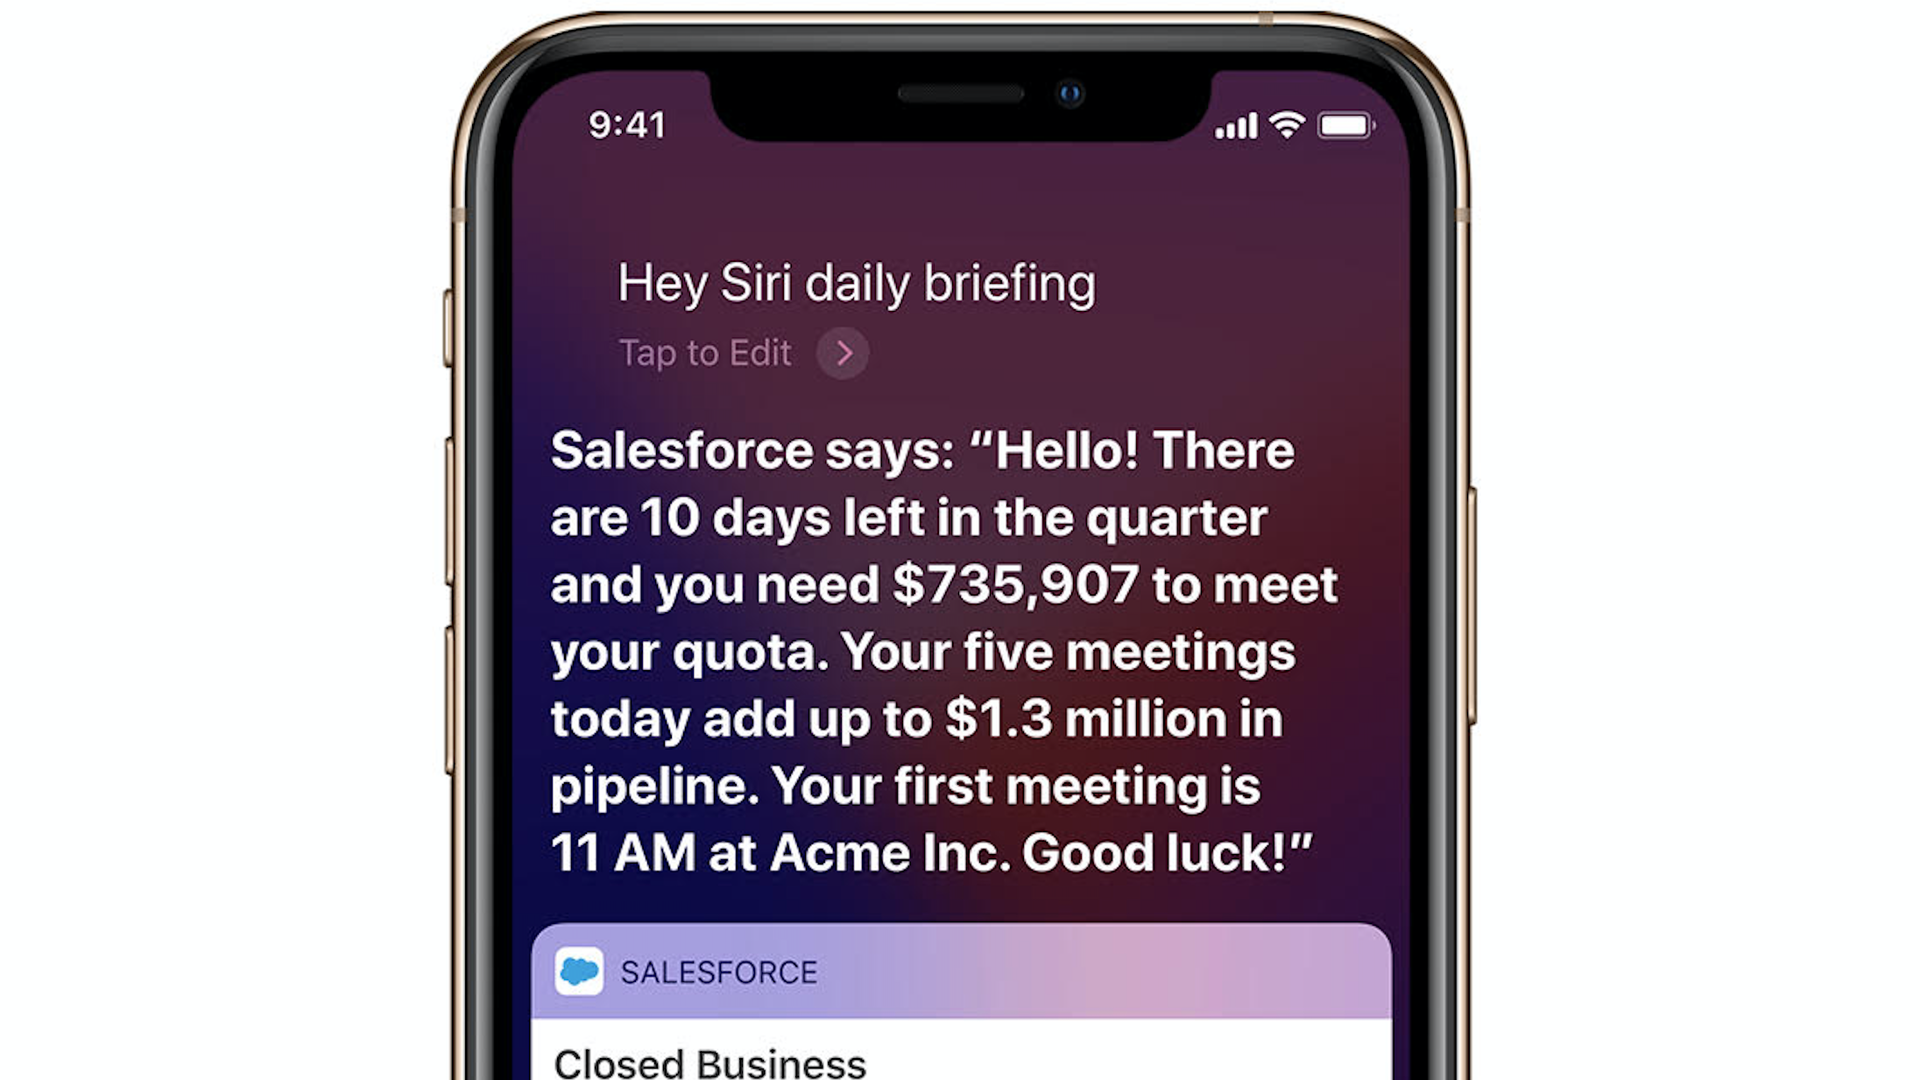 Salesforce data showing up inside of Apple's Siri assistant